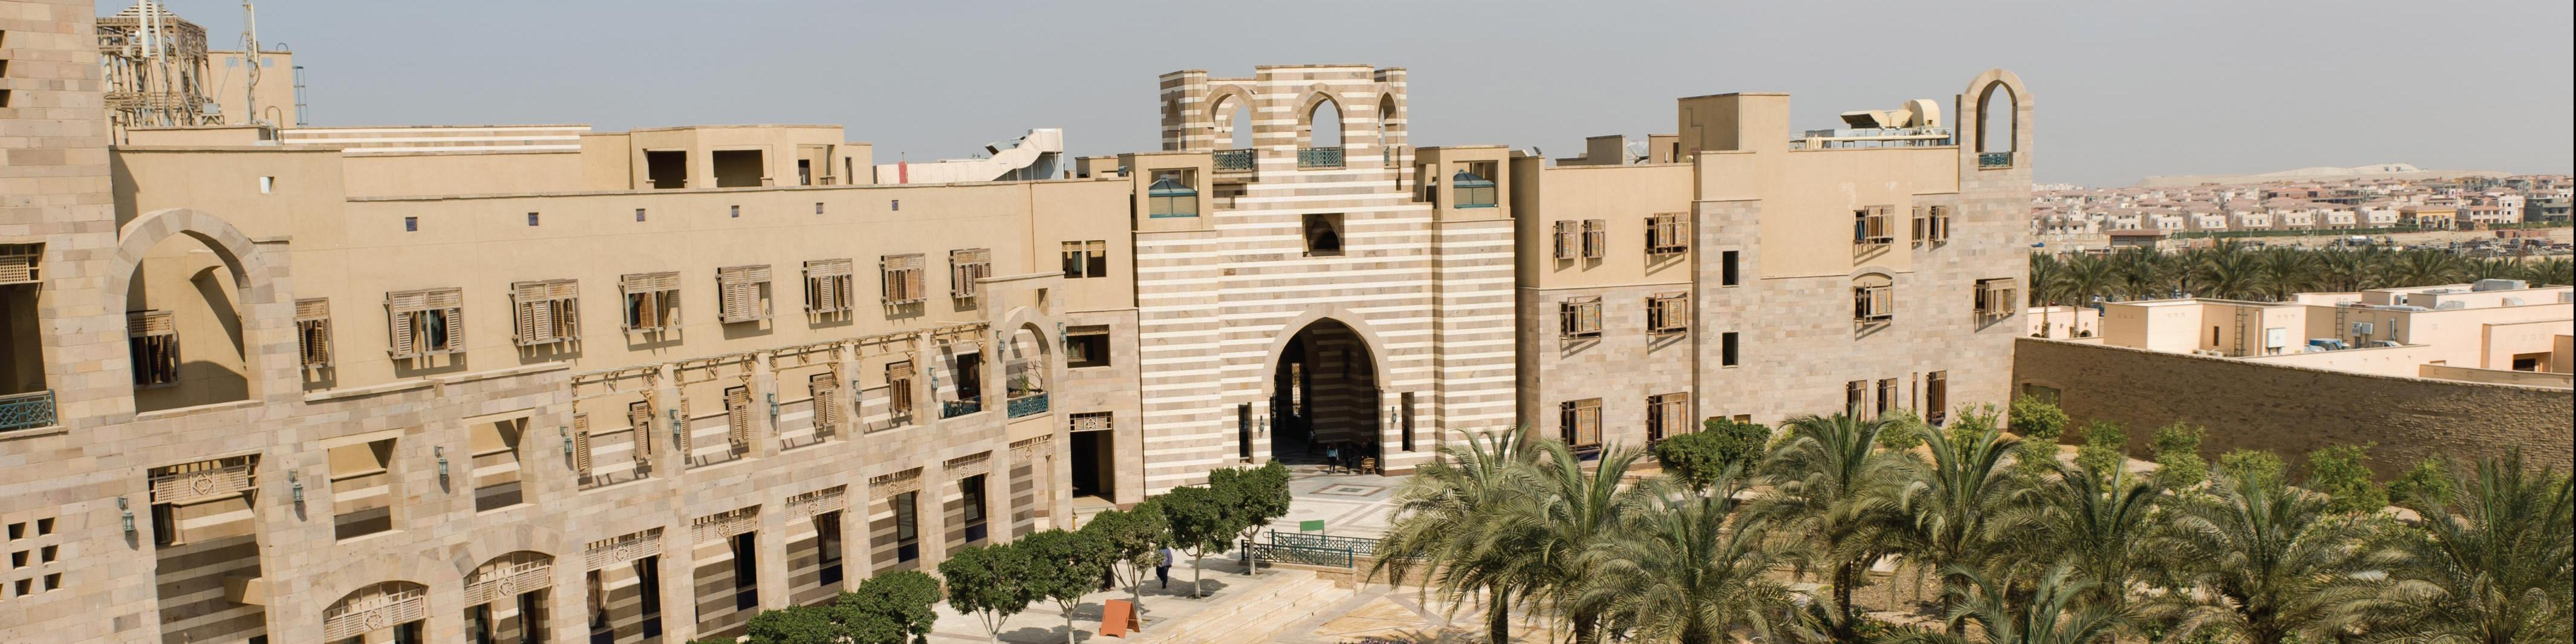 AUC entrance Gate 1 and garden